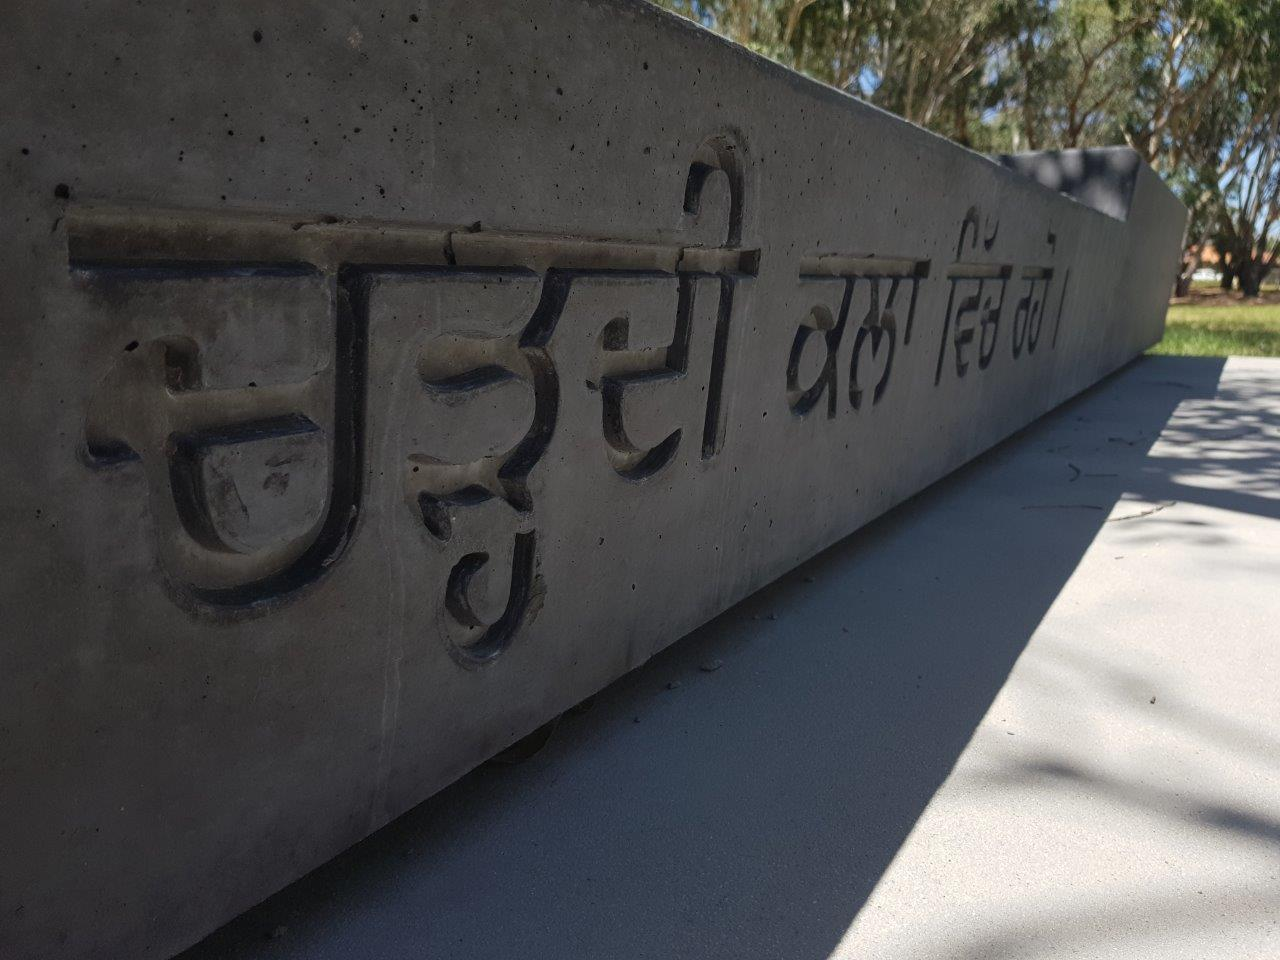 Node 2 (Theme: Australian Sikh Cremations) - 'Charhdhi Kalaa Vich Raho' in Gurmukhi script which translates into 'May you remain in eternal optimism'.